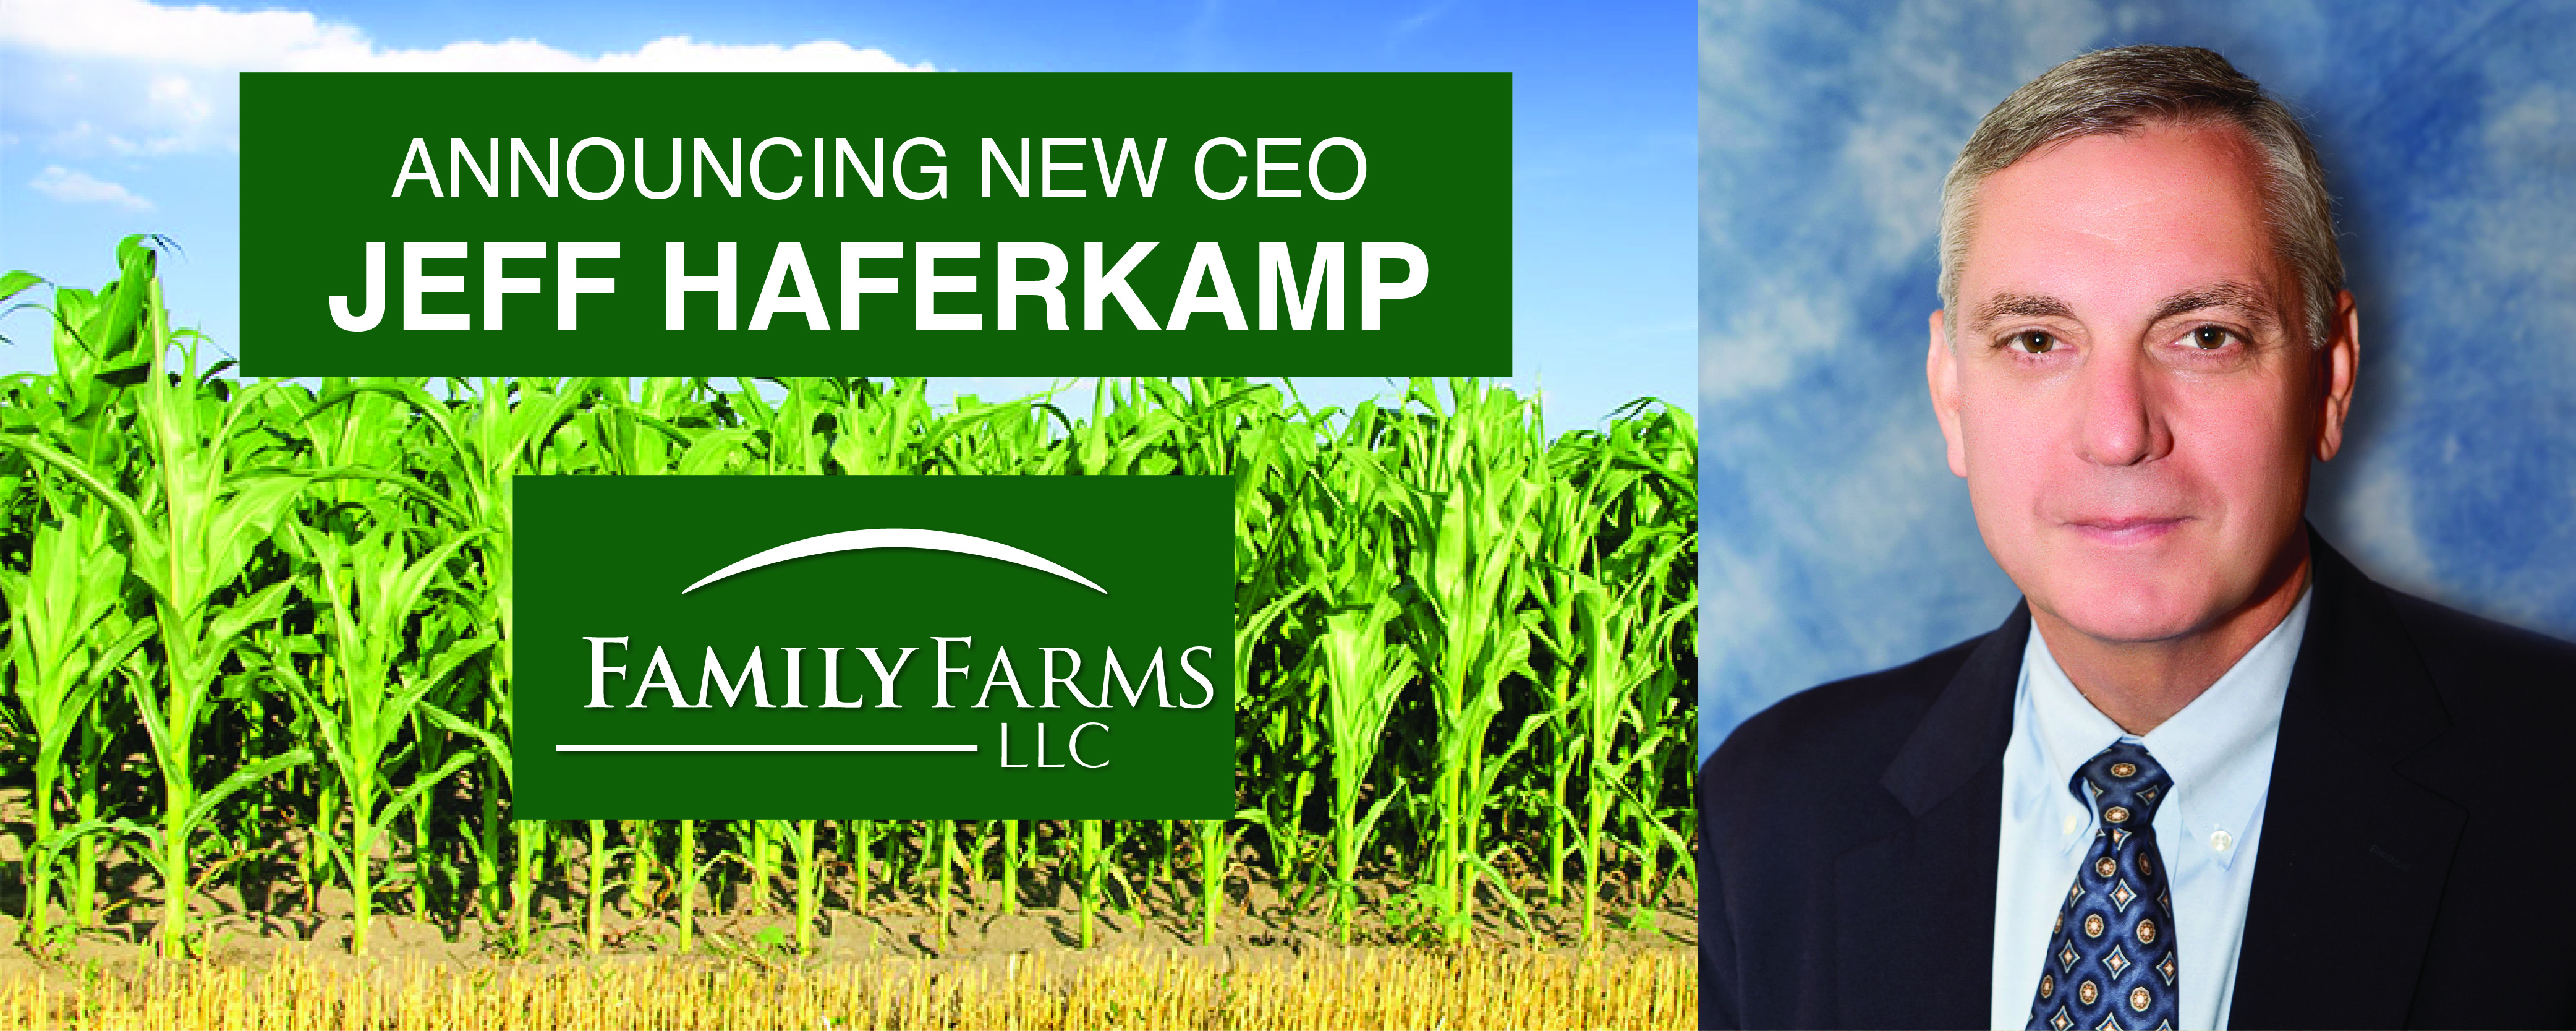 Family Farms LLC Appoints Jeff Haferkamp as CEO